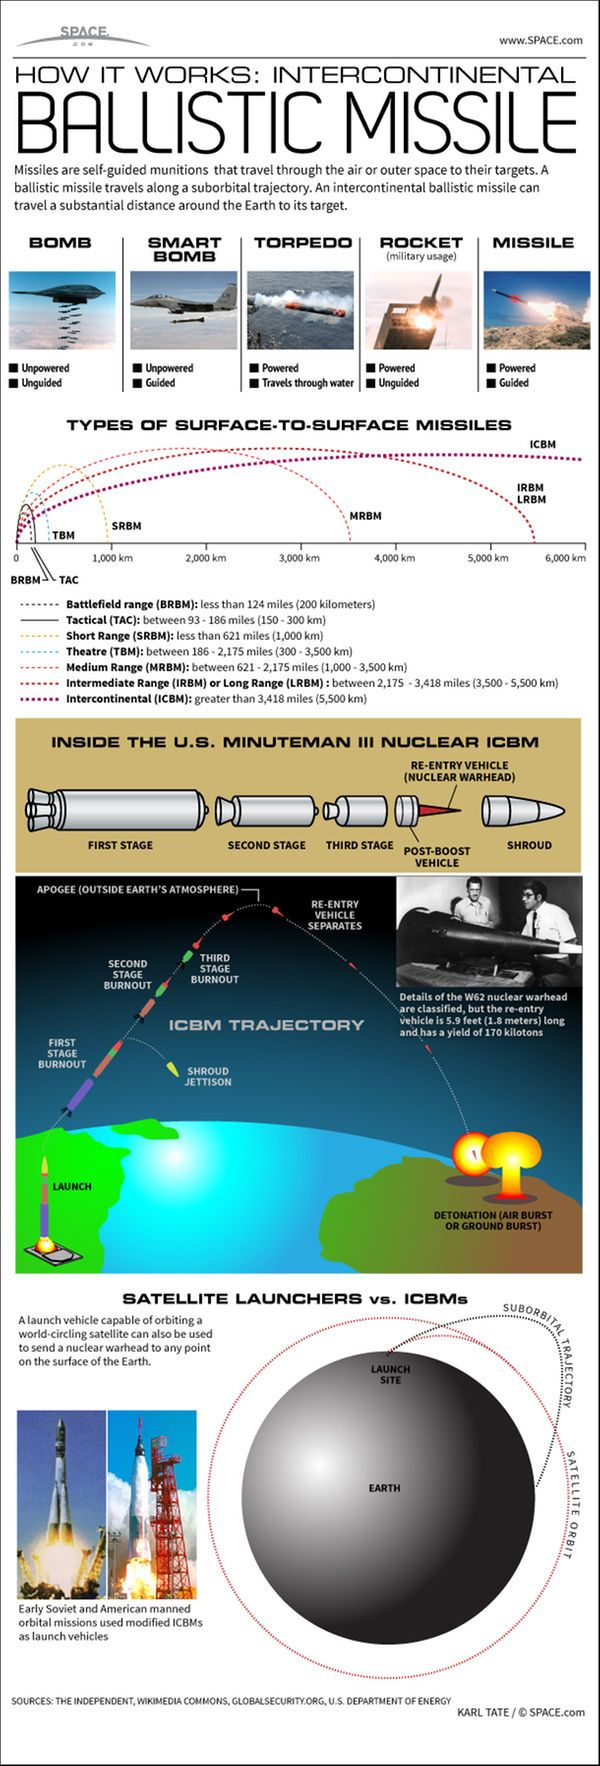 How Intercontinental Ballistic Missiles Work (Infographic)